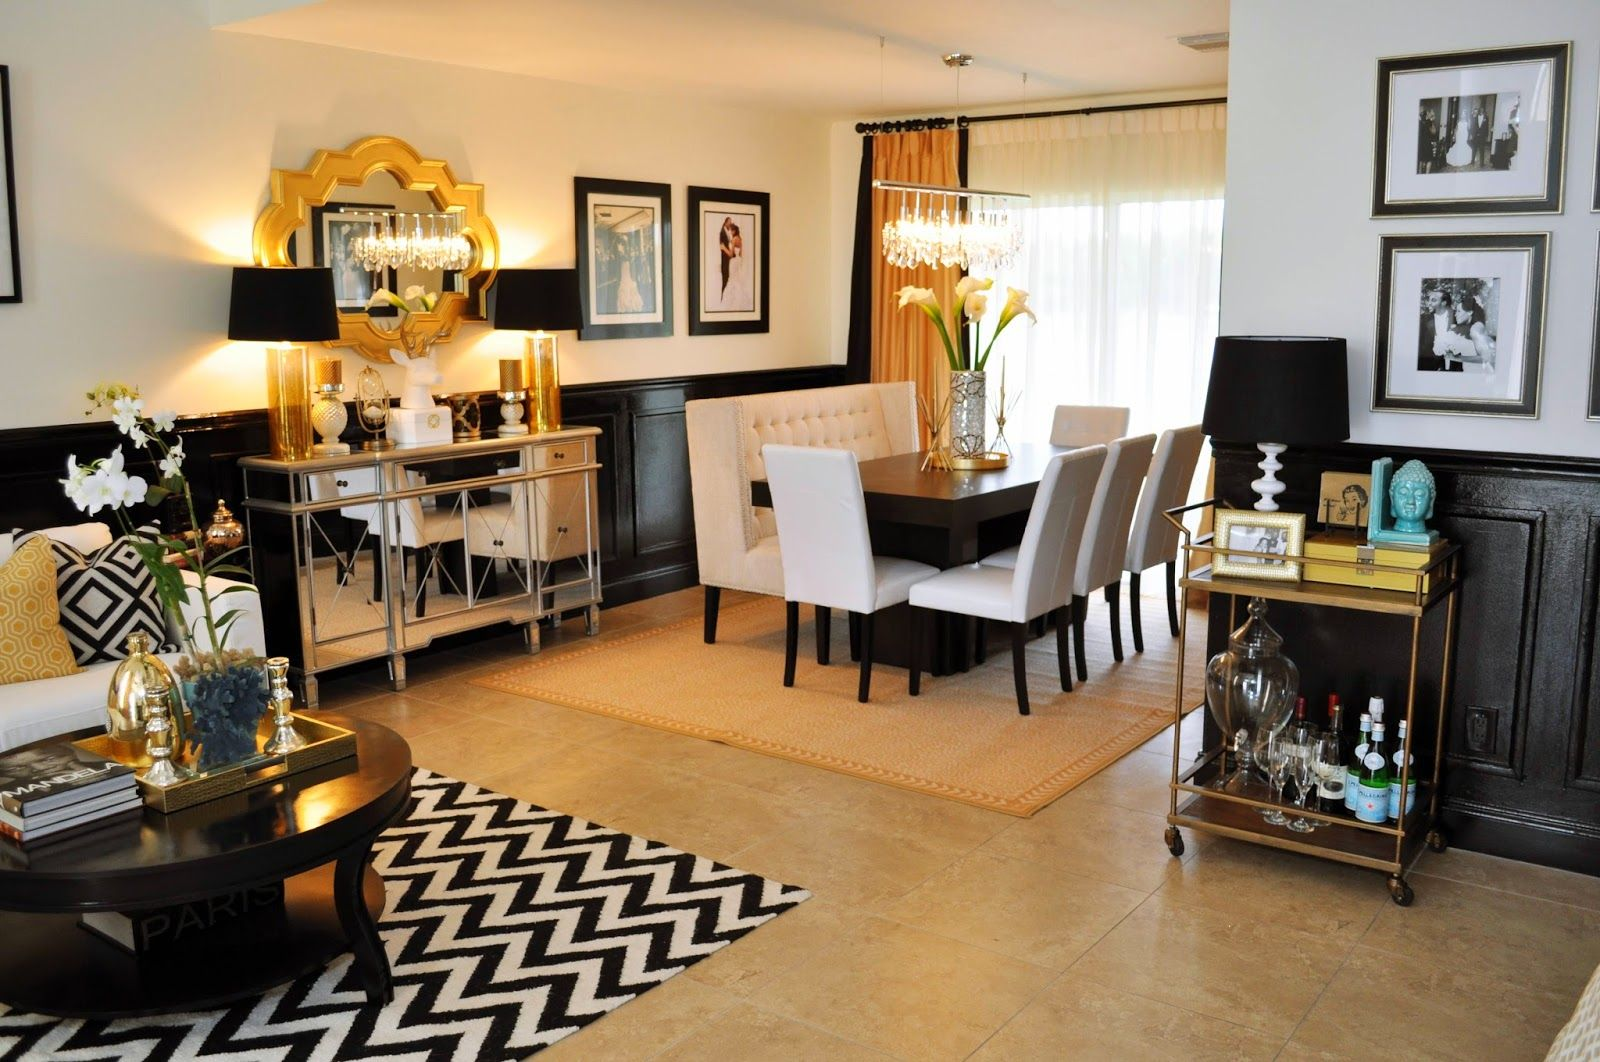 Interior Design Living Room Dining Room Home Reveal Gold Living Room Decor Black And Gold Living Room Gold Living Room